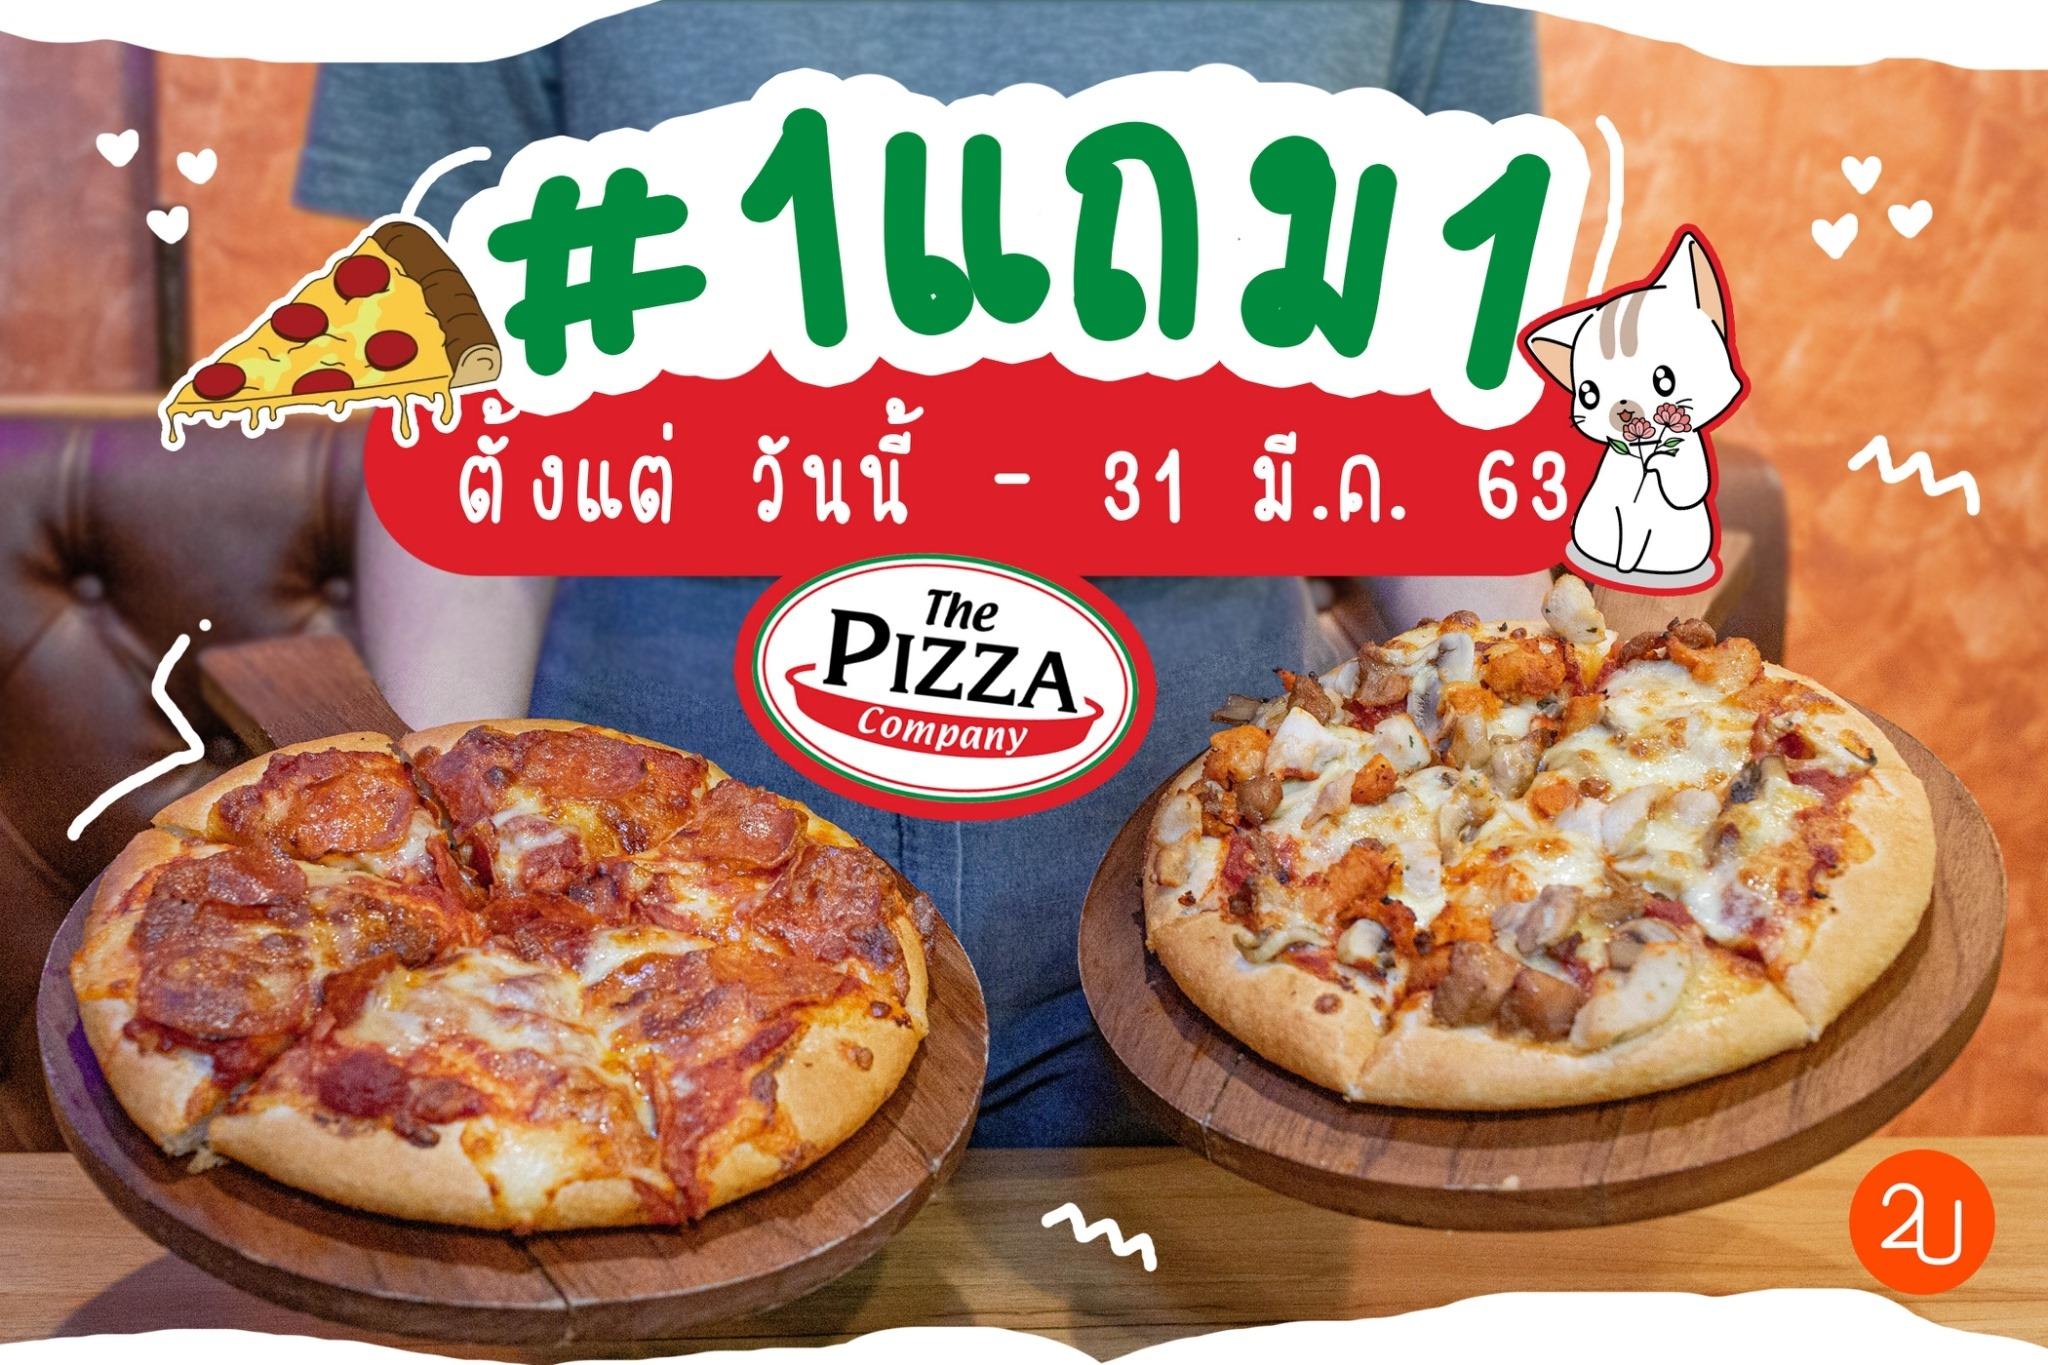 Promotion The Pizza Company Buy 1 get free 1 march 2020